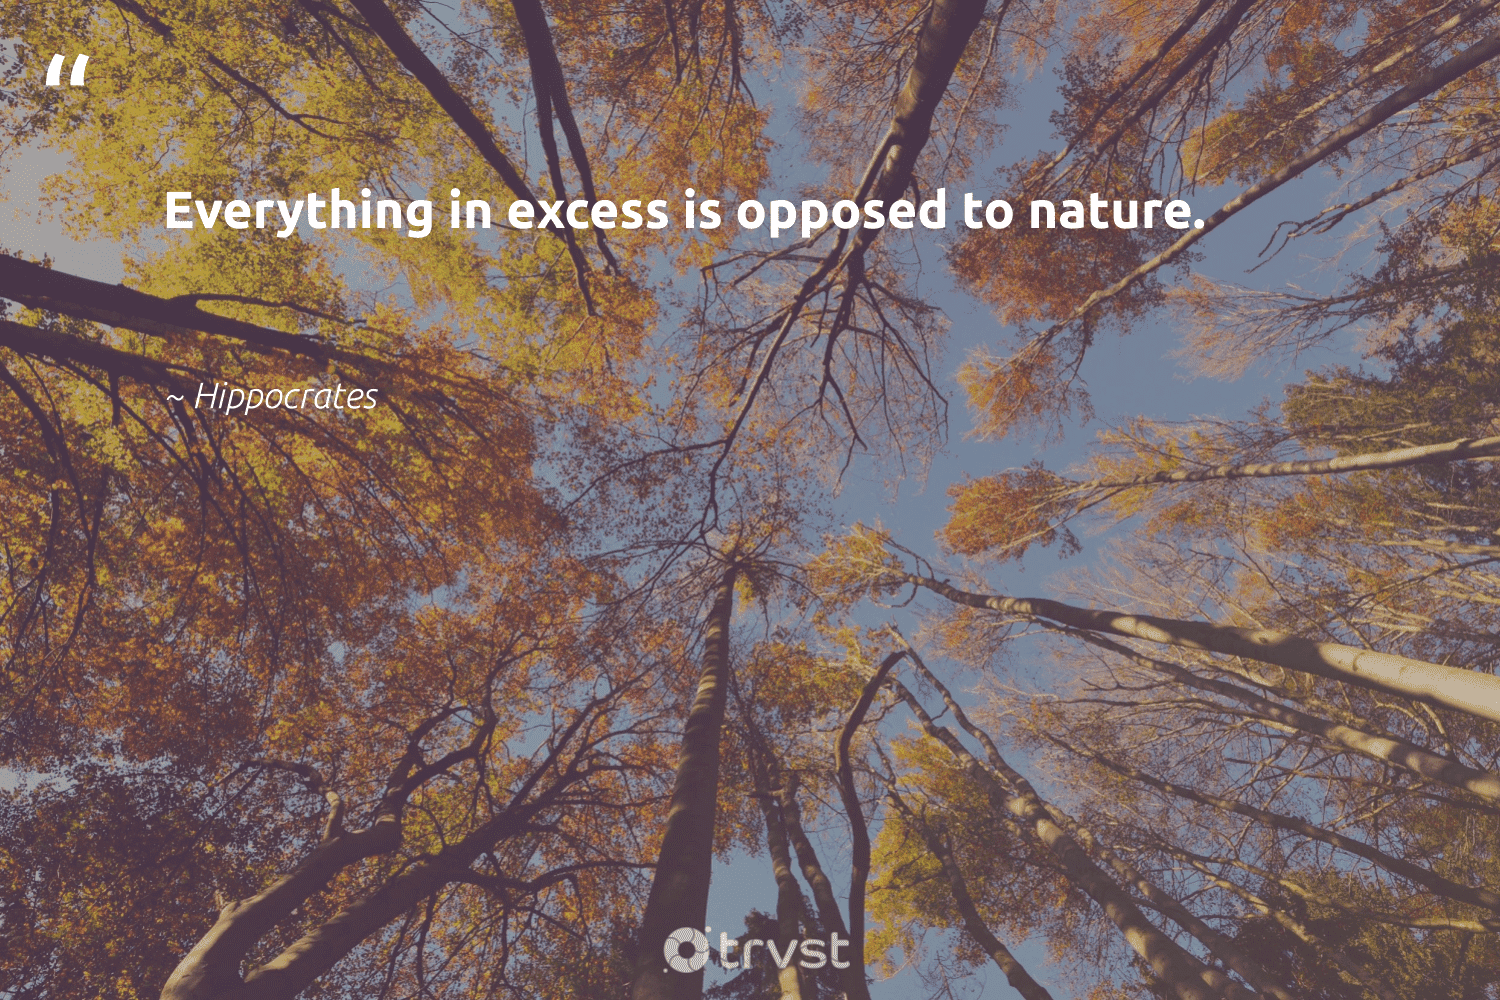 """""""Everything in excess is opposed to nature.""""  - Hippocrates #trvst #quotes #environment #nature #planet #gogreen #ecofriendly #takeaction #conservation #giveback #earth #changetheworld"""